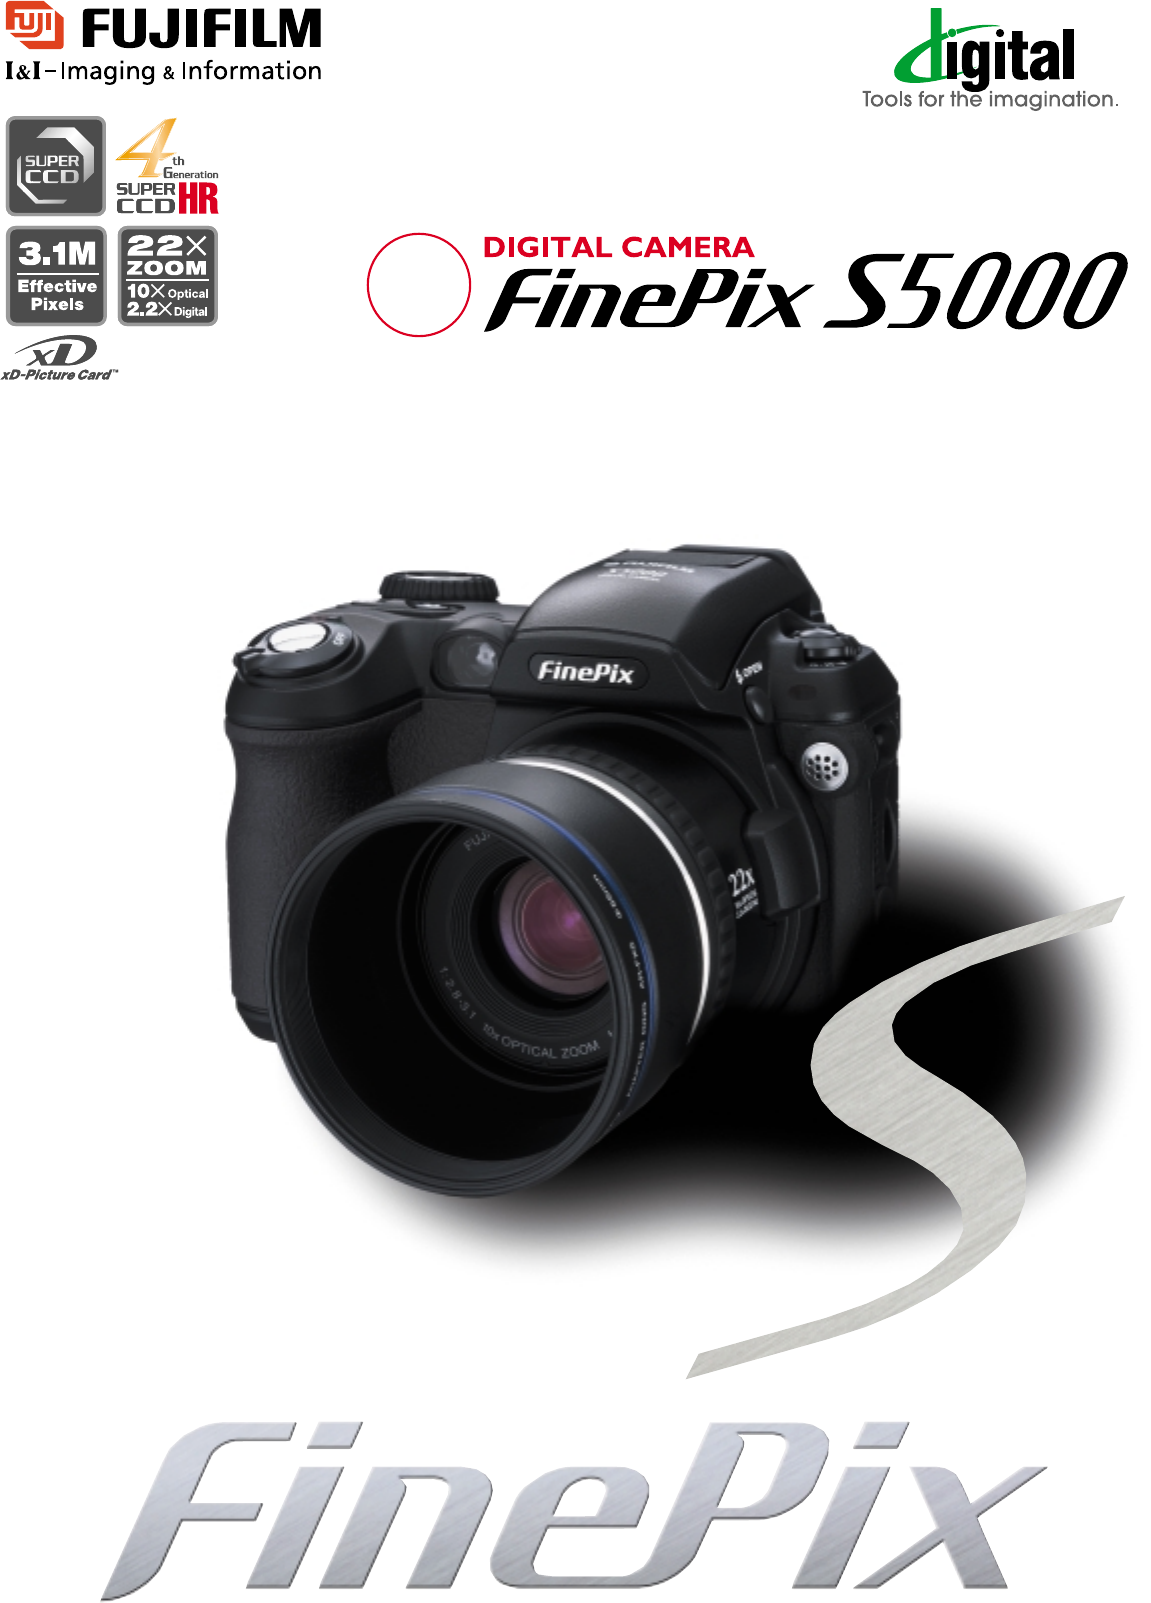 Fujifilm digital camera finepix s5000 user guide for Fujifilm finepix s5000 prix